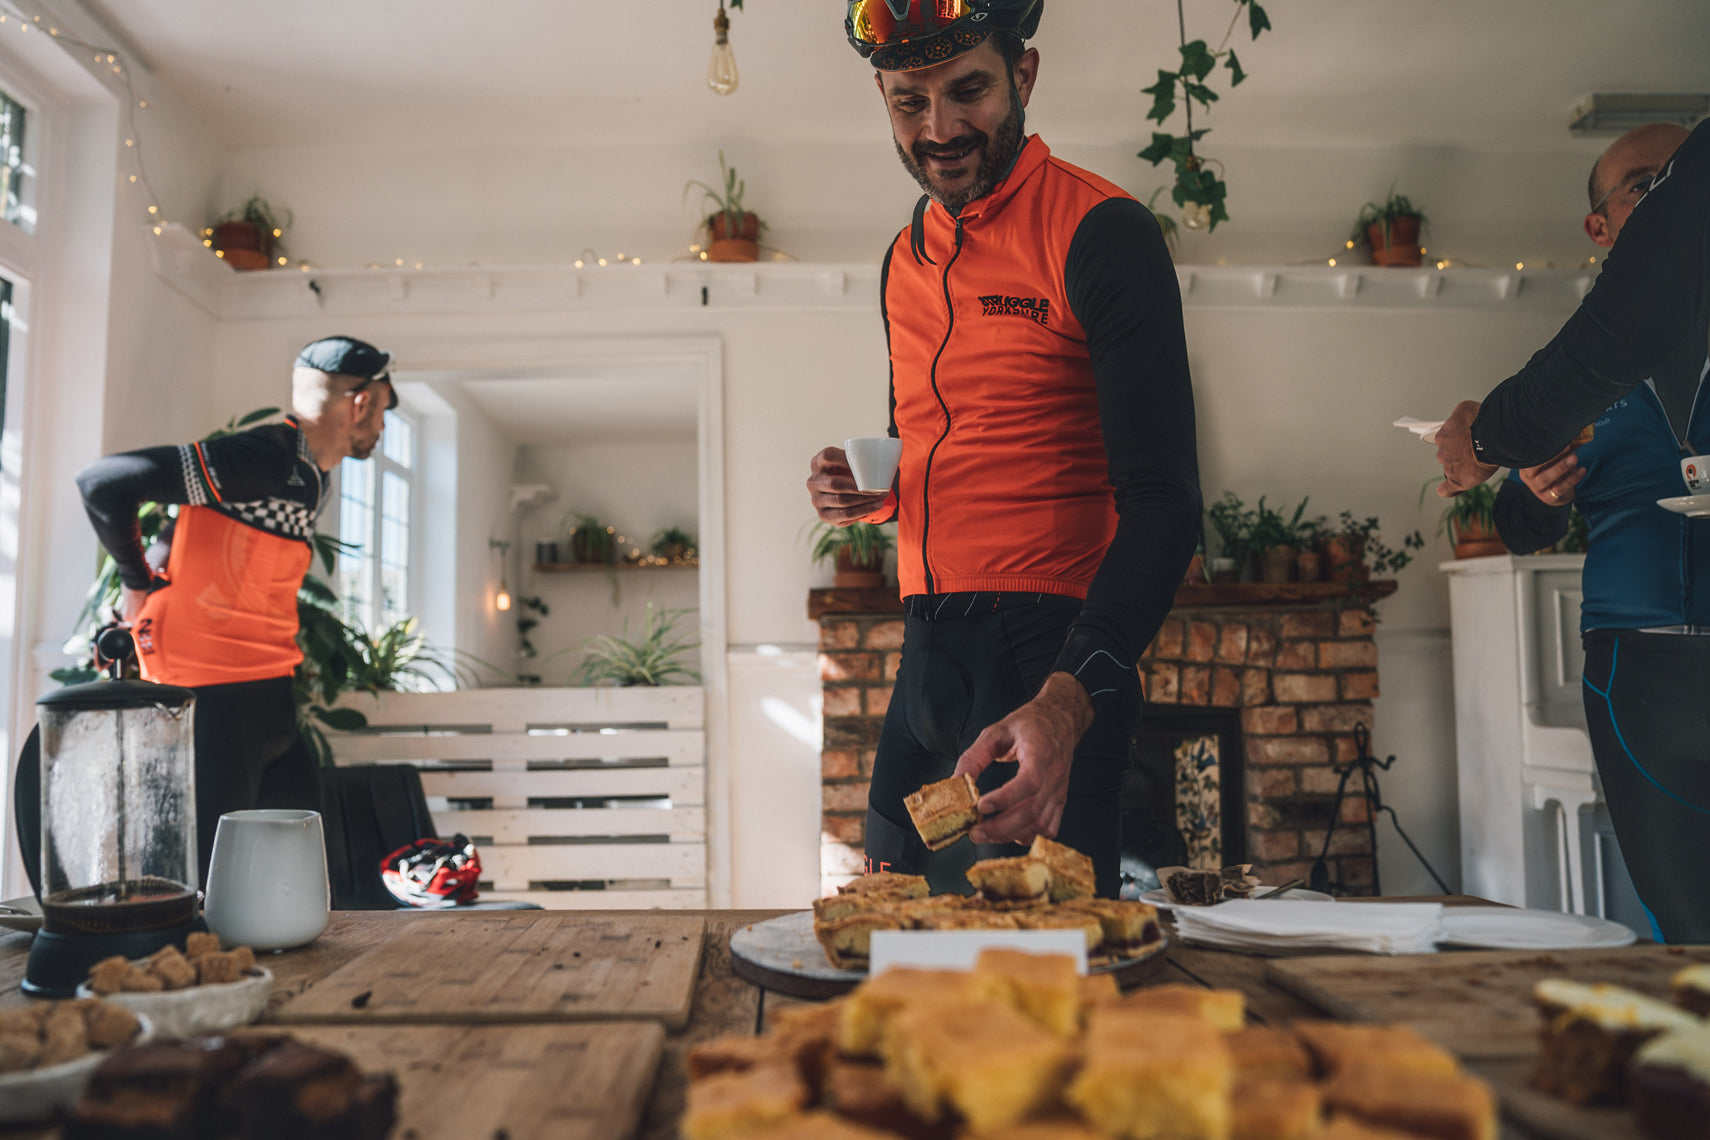 corporate cycling event in Yorkshire - Hideaway kitchen